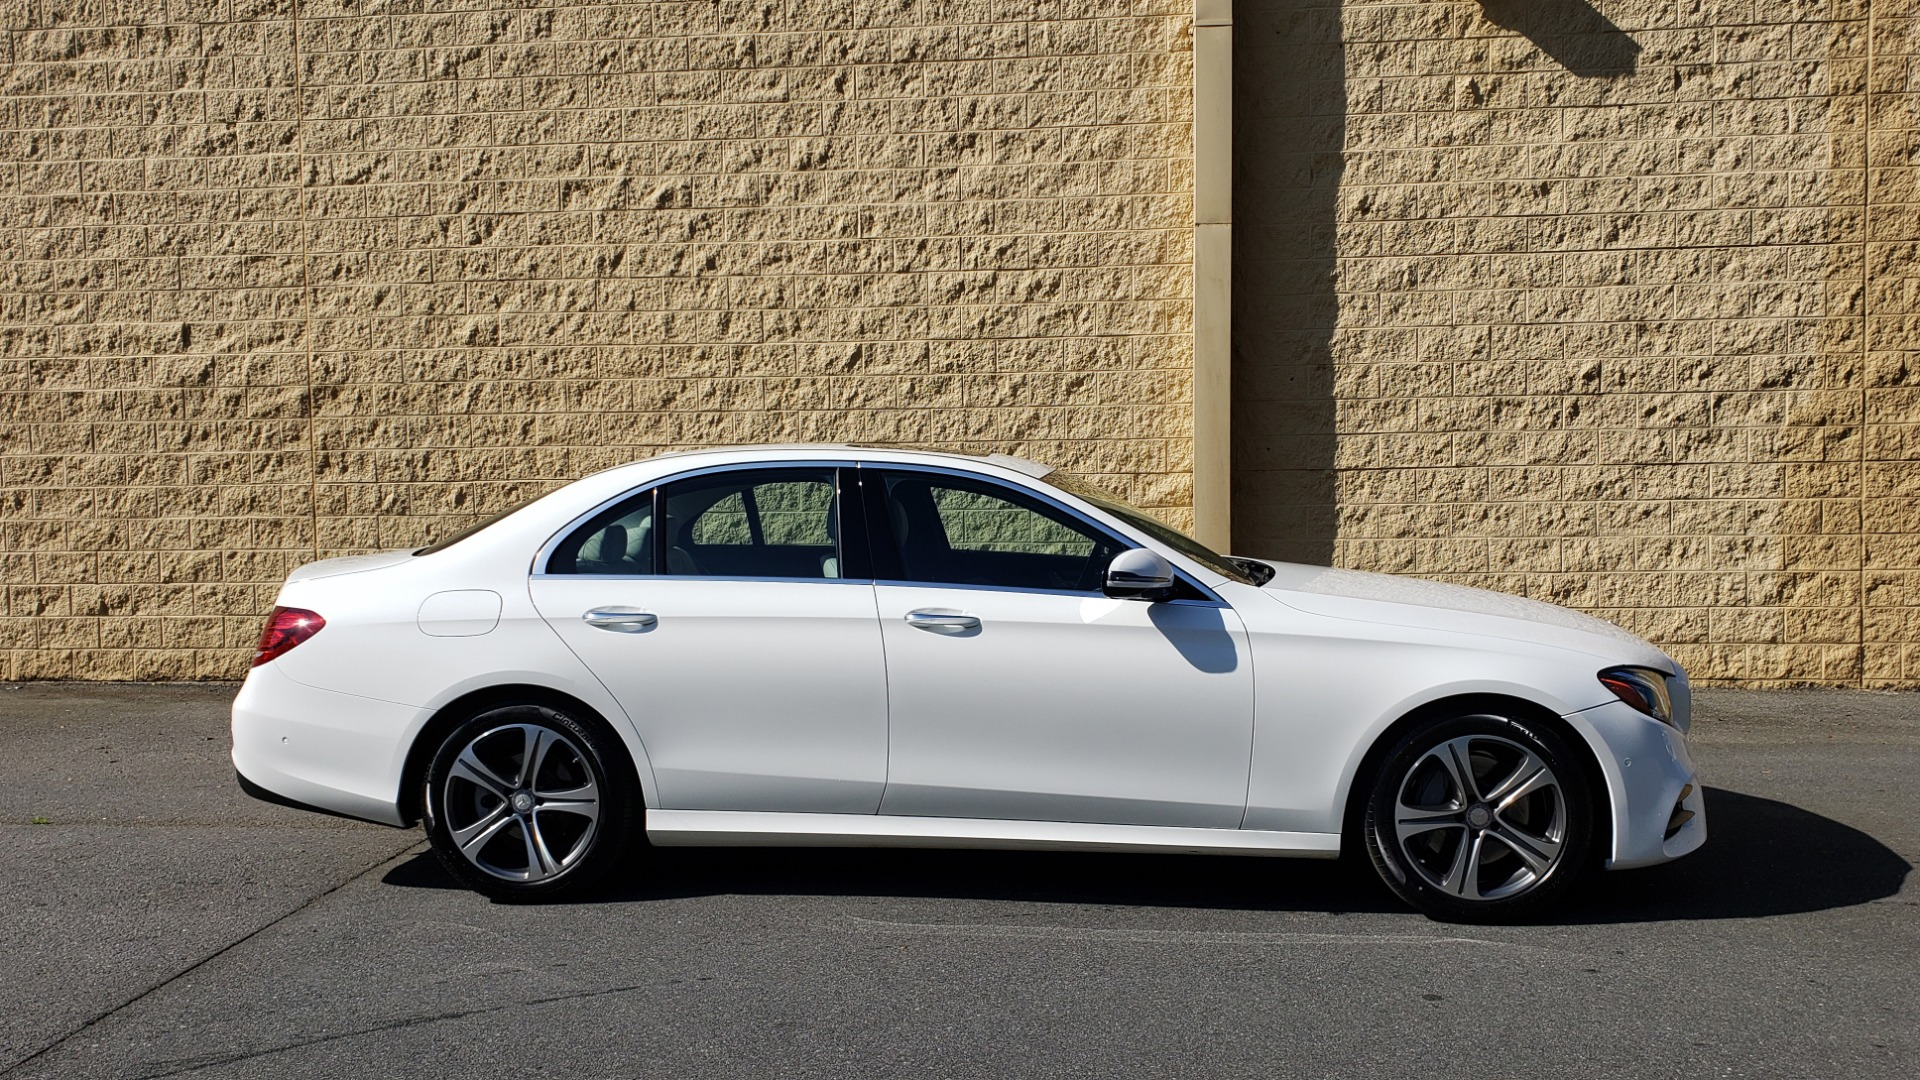 Used 2017 Mercedes-Benz E-Class E 300 PREMIUM / RWD / NAV / SNF / PARKING PILOT / REARVIEW / BURMESTER for sale Sold at Formula Imports in Charlotte NC 28227 5